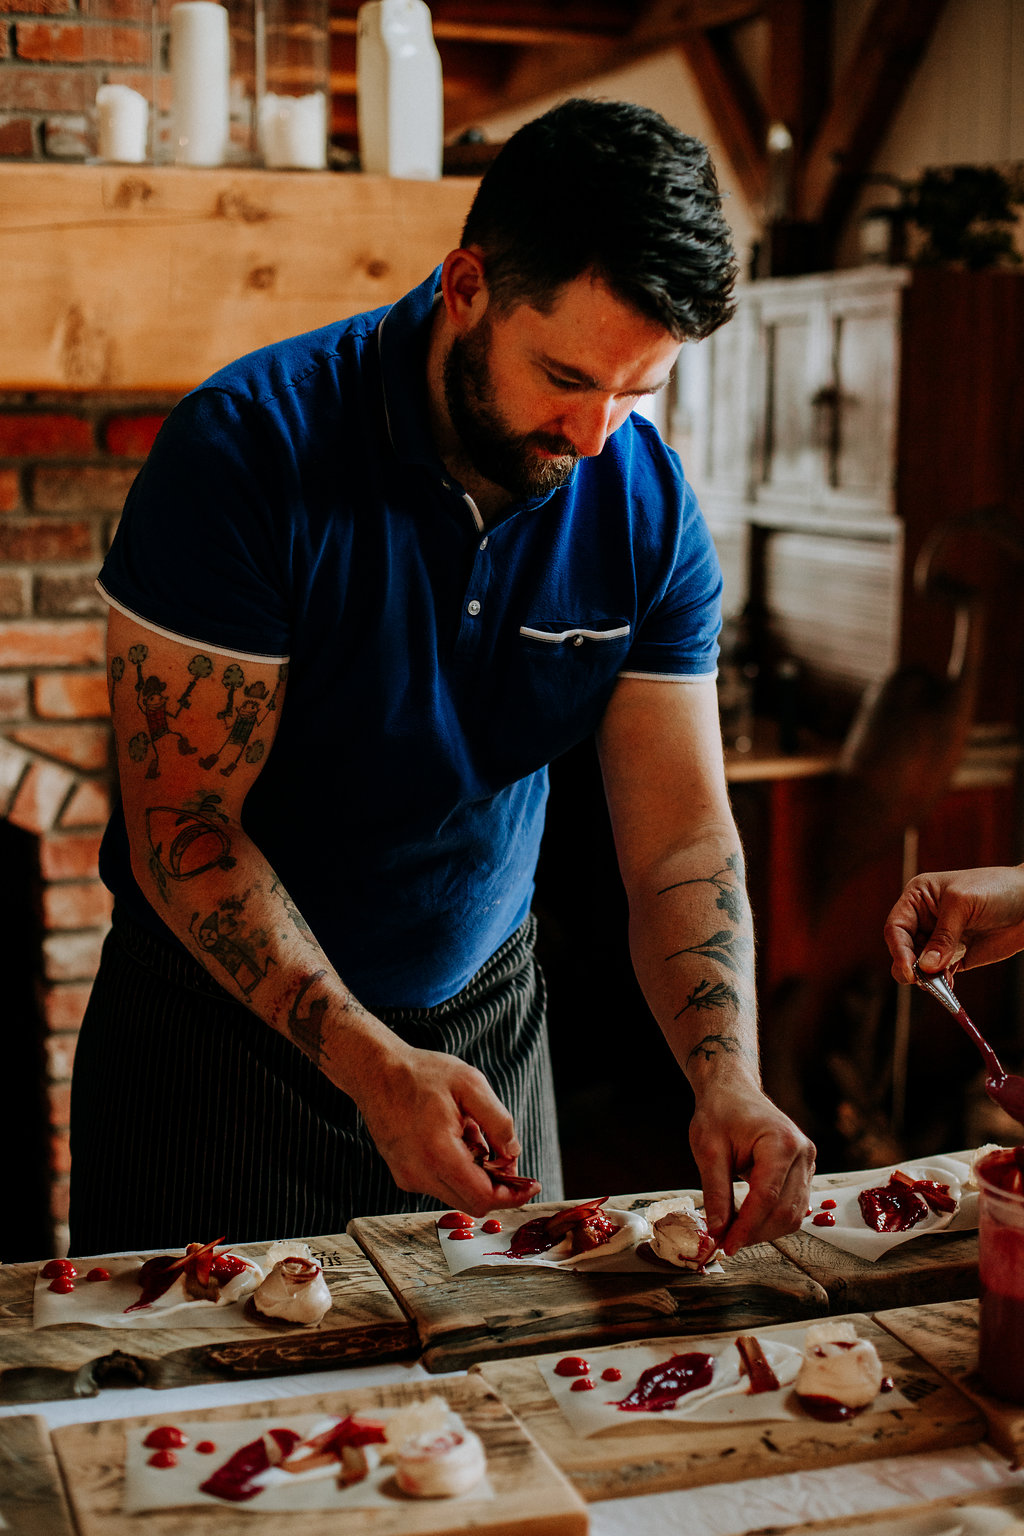 Chef Pierre prepares local food for a Season and Supply dinner in Calgary Alberta